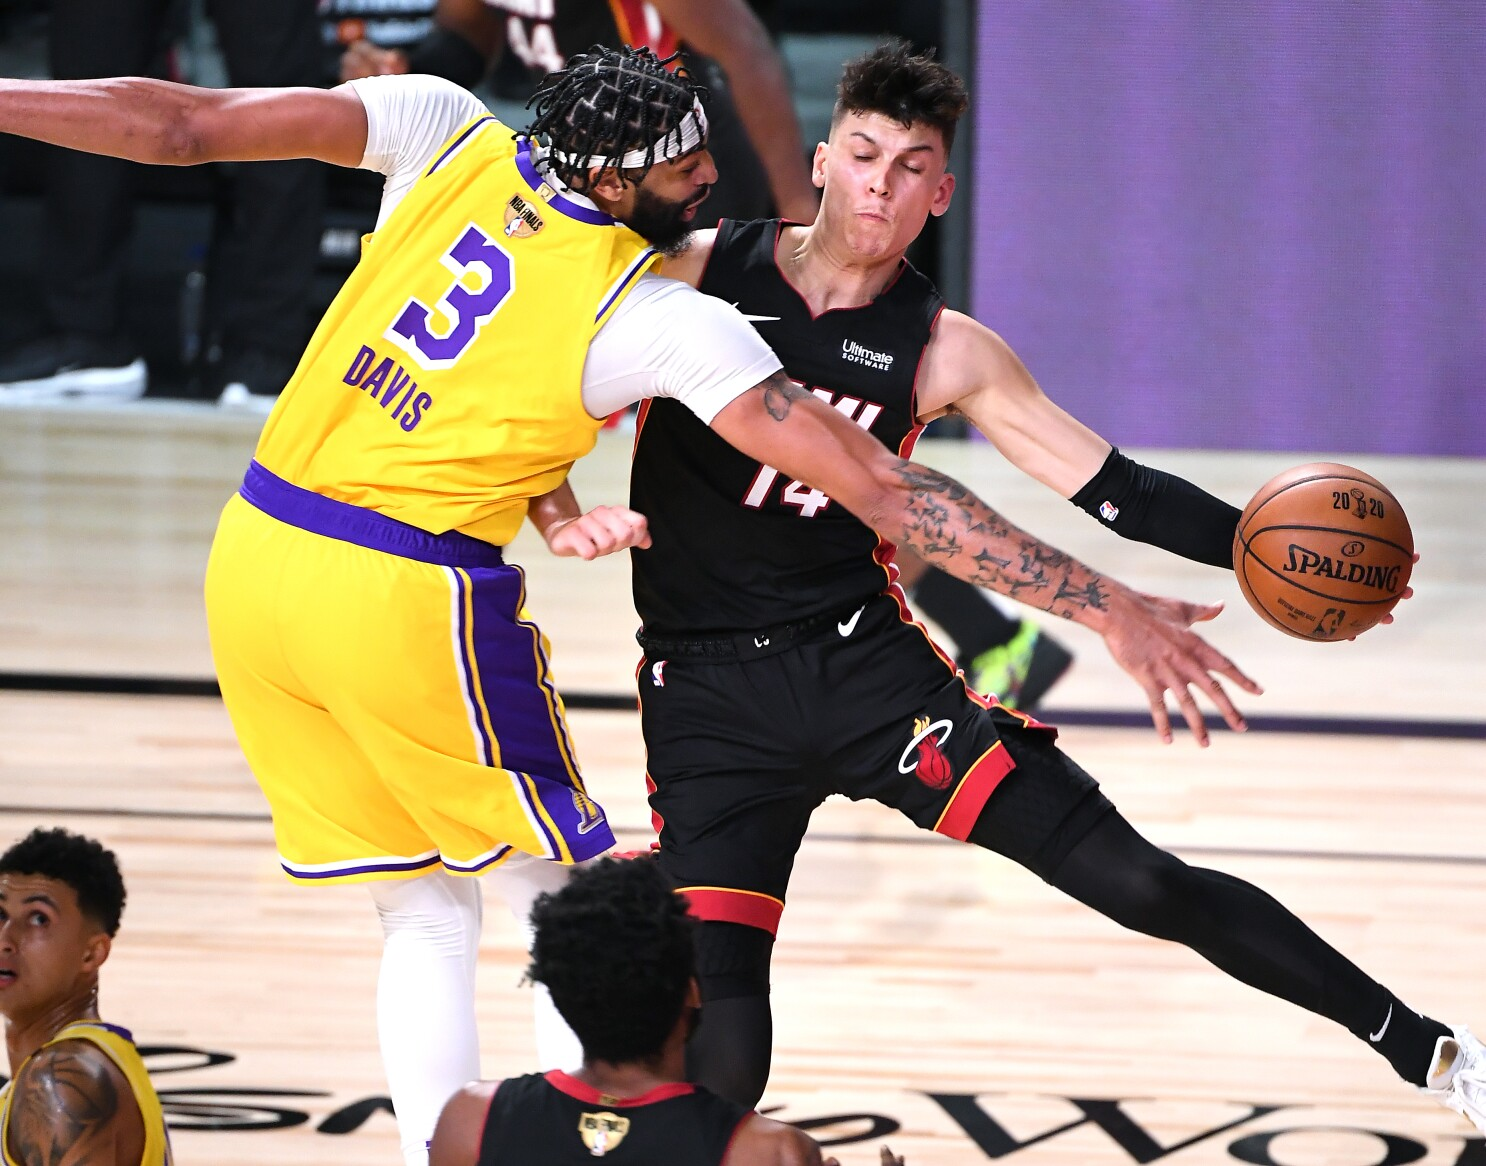 Plaschke Lakers Make A Finals Statement This Might Be Over Already Los Angeles Times